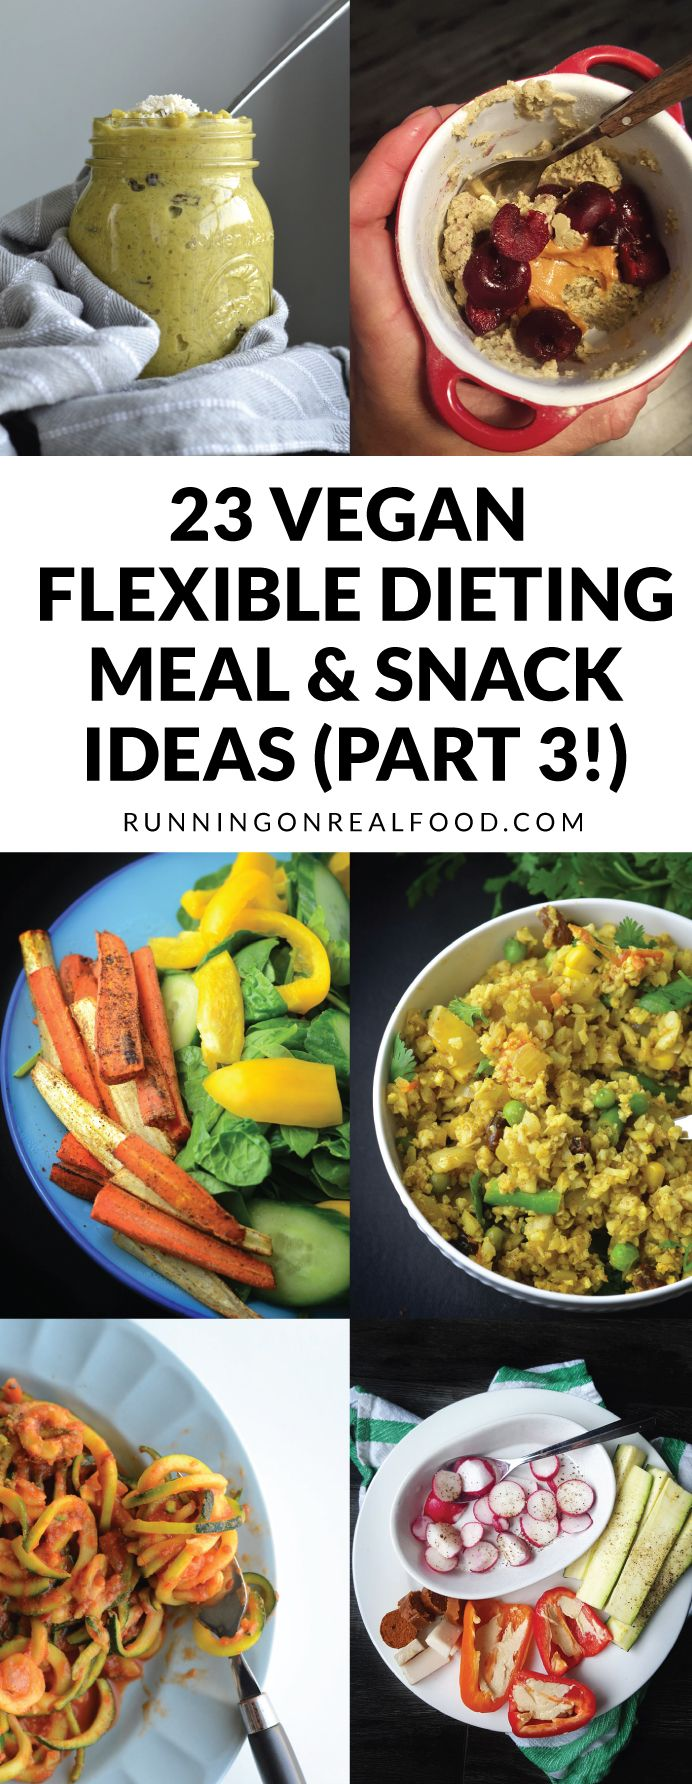 Vegan athletes and flexible dieters! Check out this list of aweosme meal and snack ideas for vegan flexible dieting. Stick to your macros while enjoying healthy, delicious food. #macros #crossfit